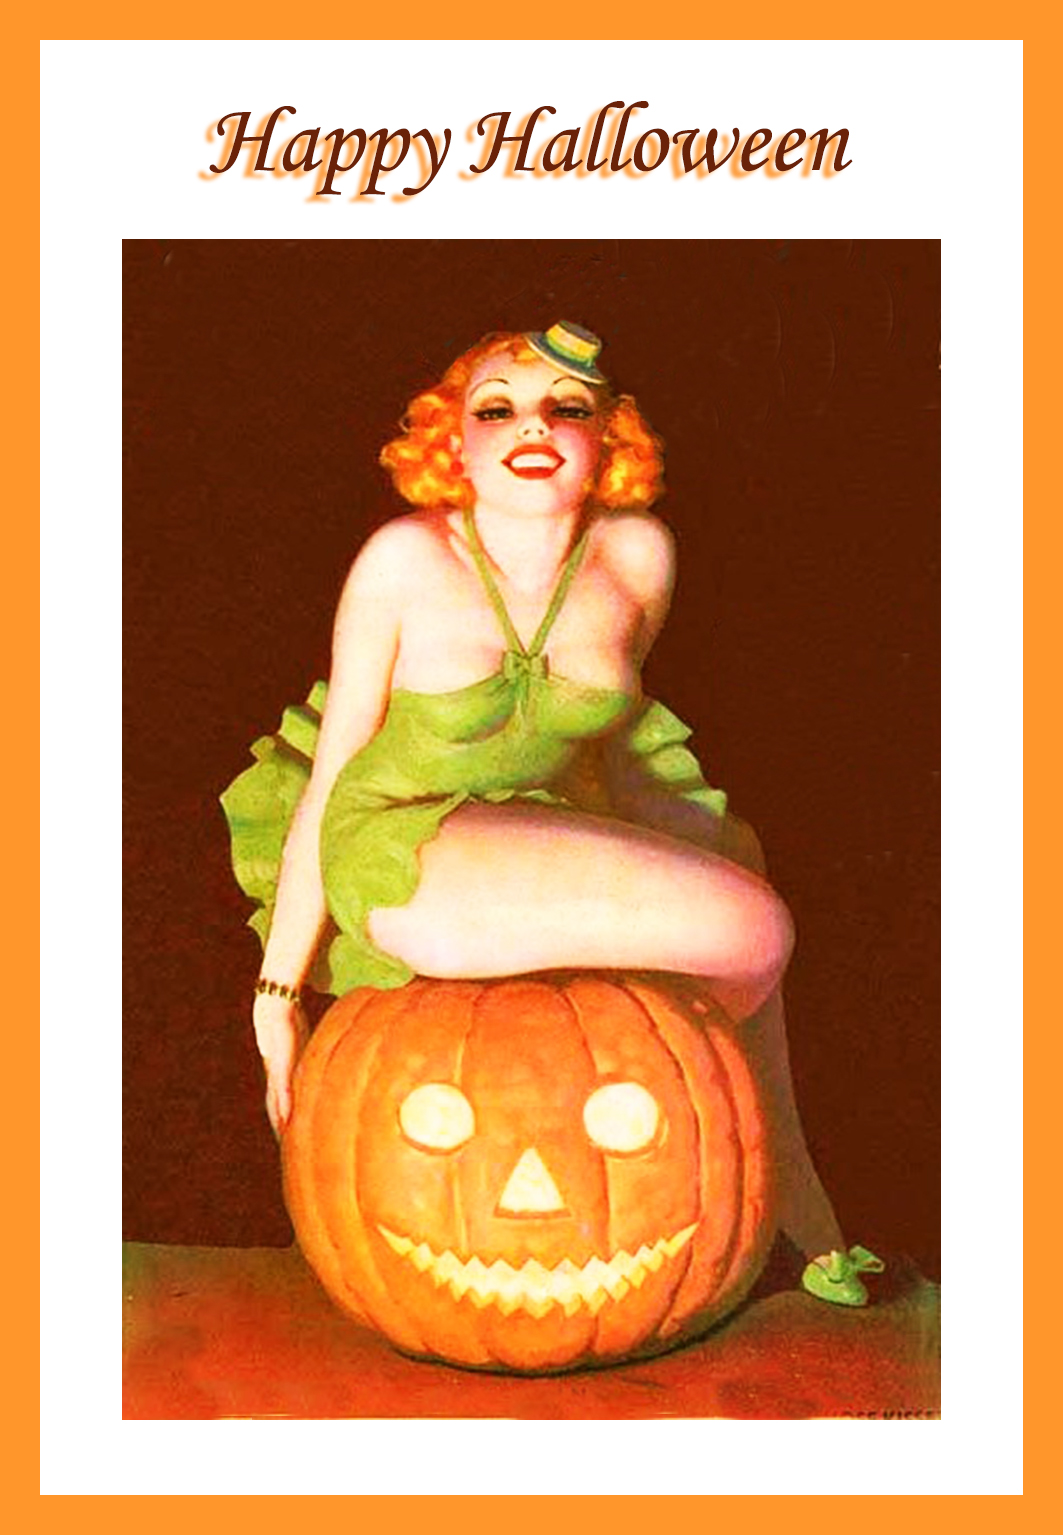 Halloween girl on pumpkin